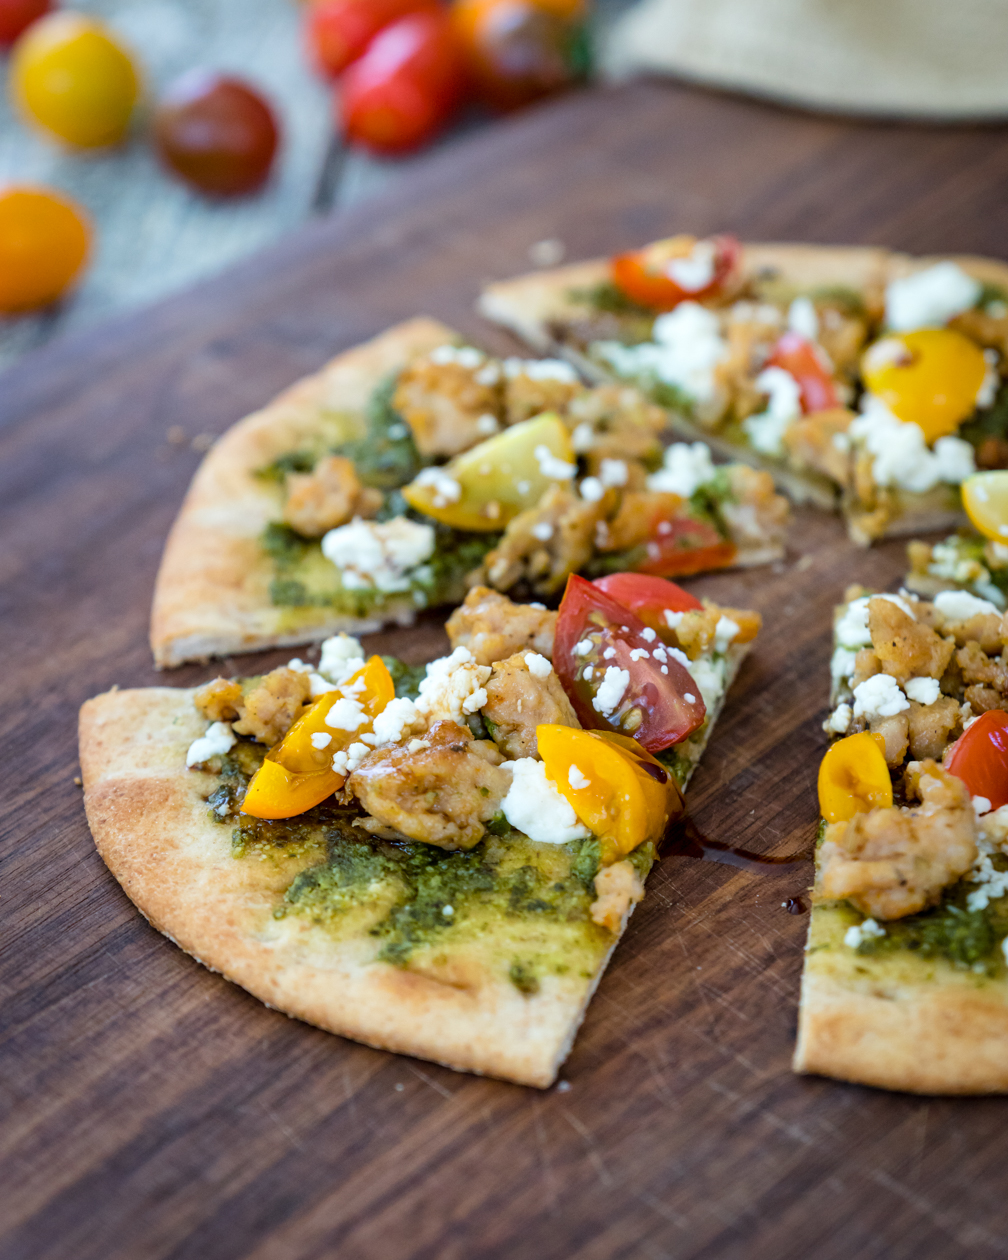 Super fast pesto pita pizza is an easy healthy meal